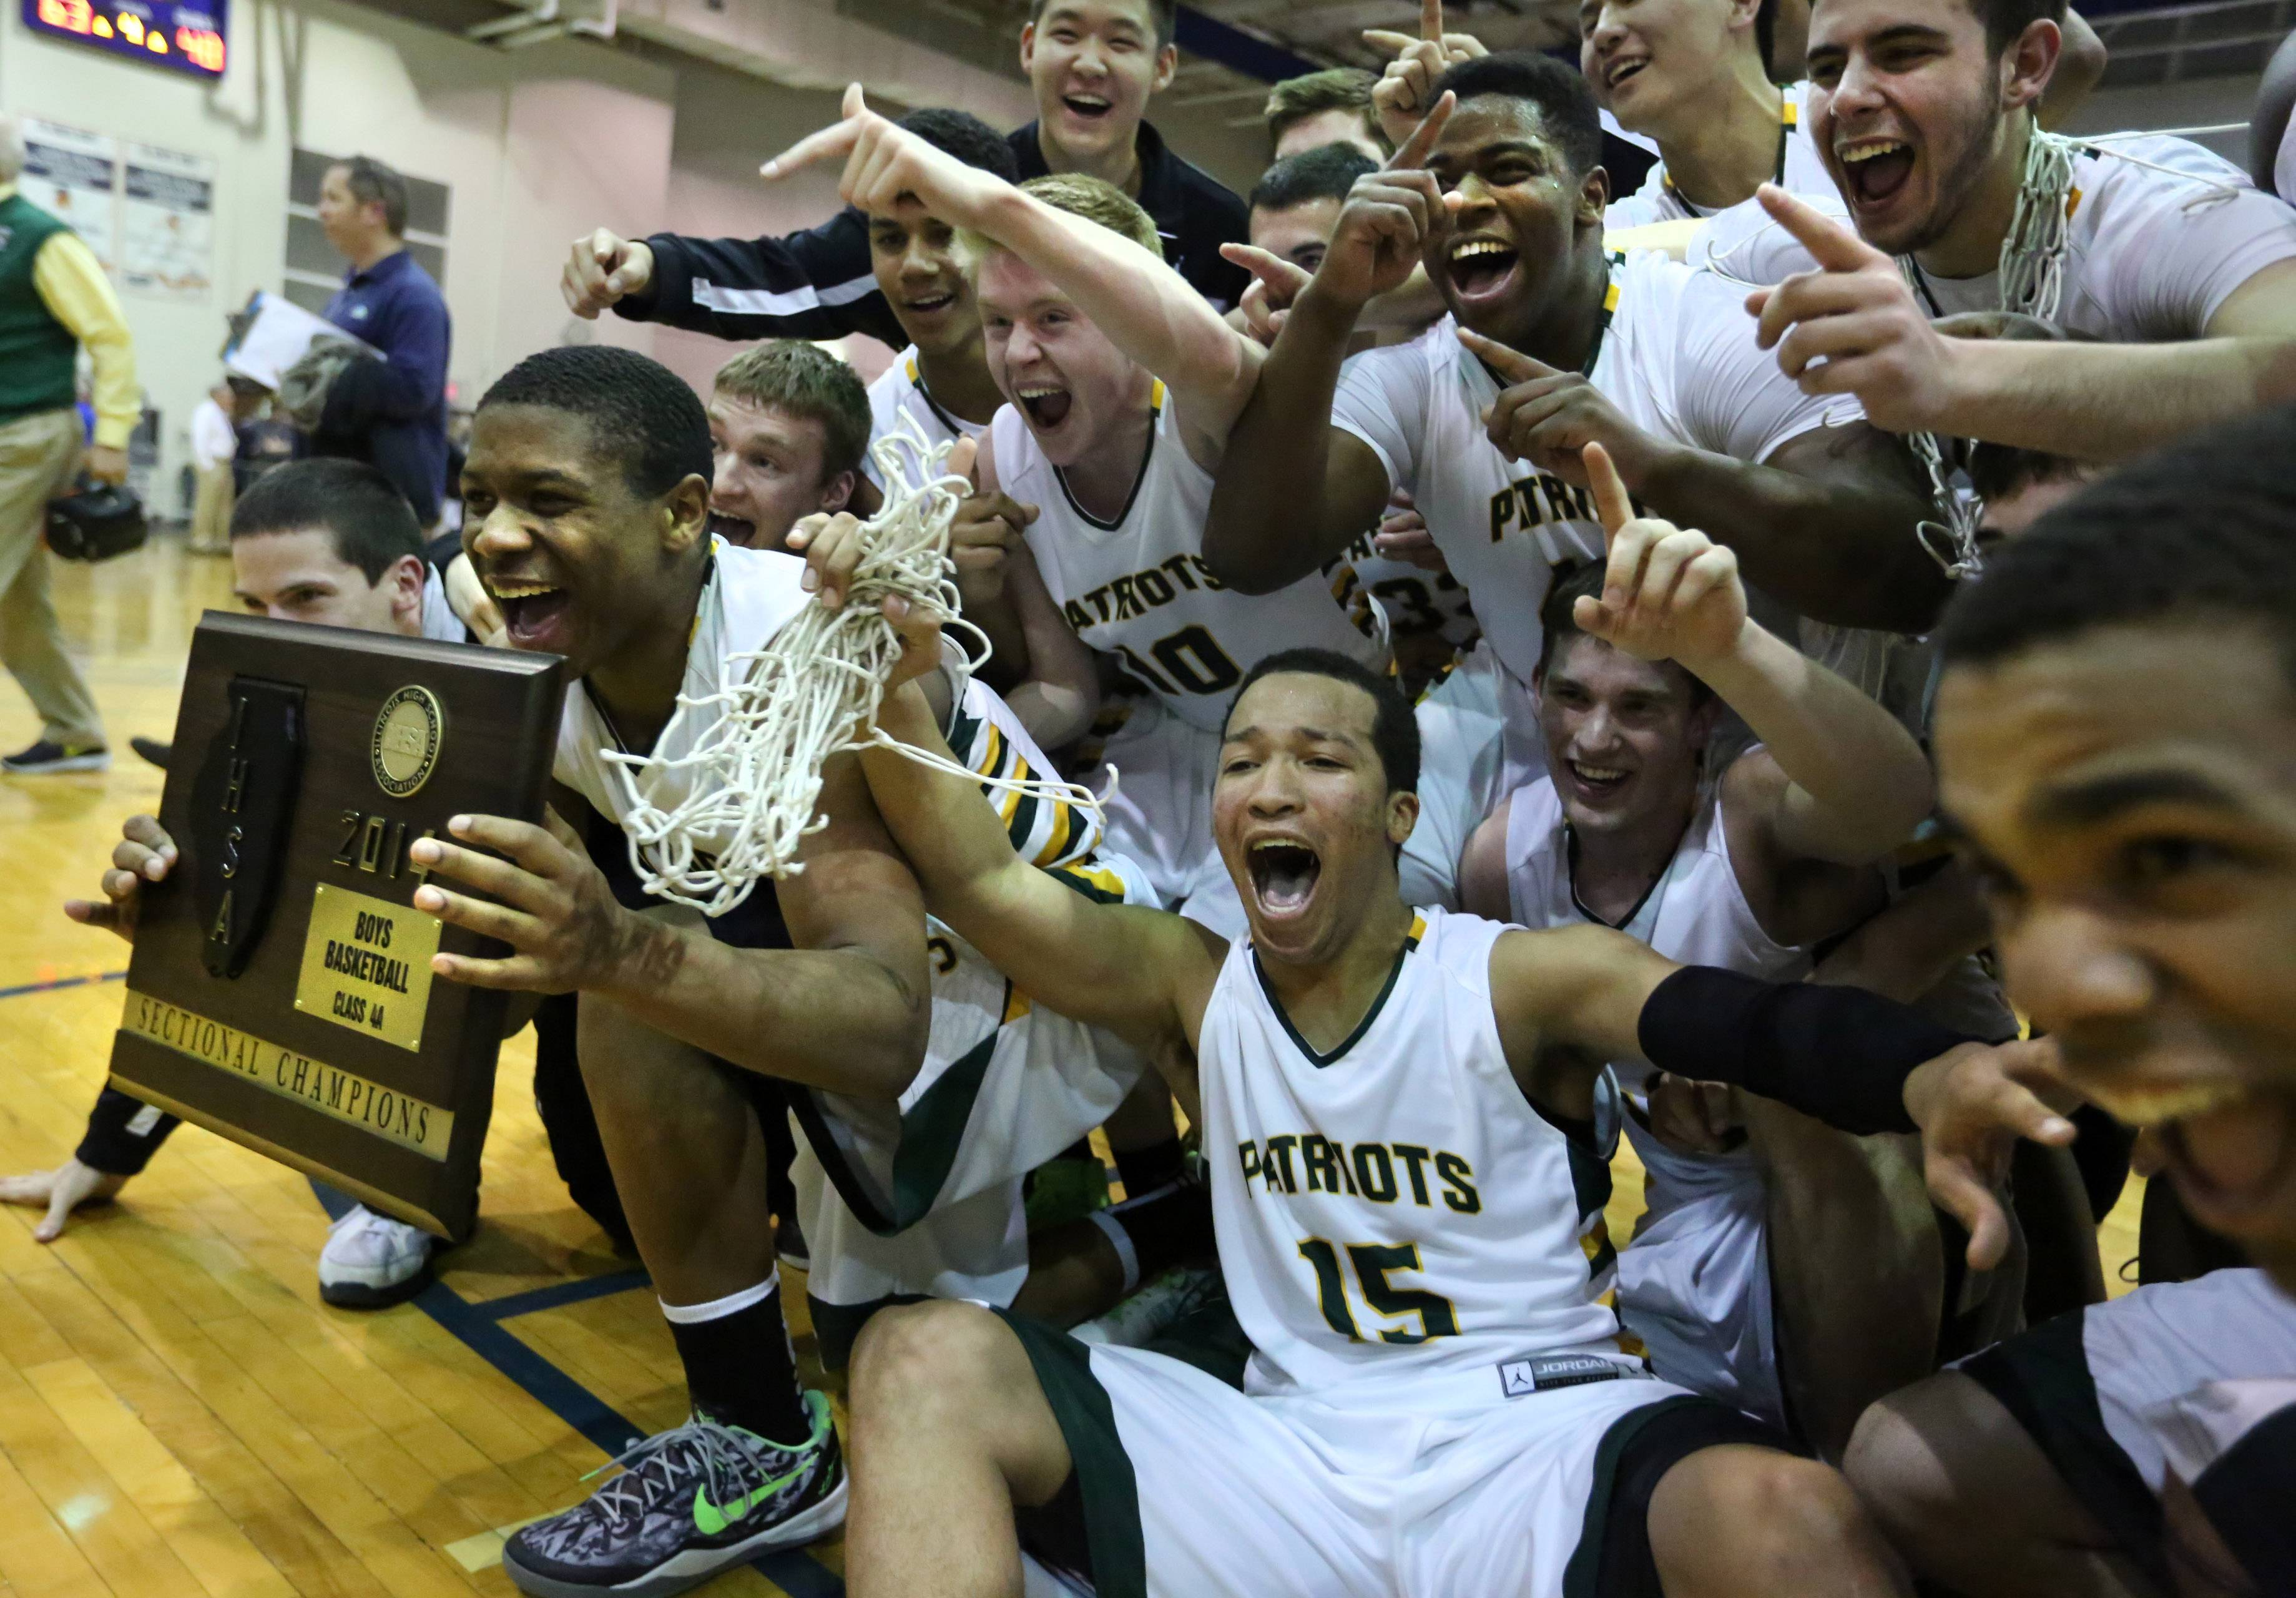 Images: Stevenson vs. Fremd boys basketball